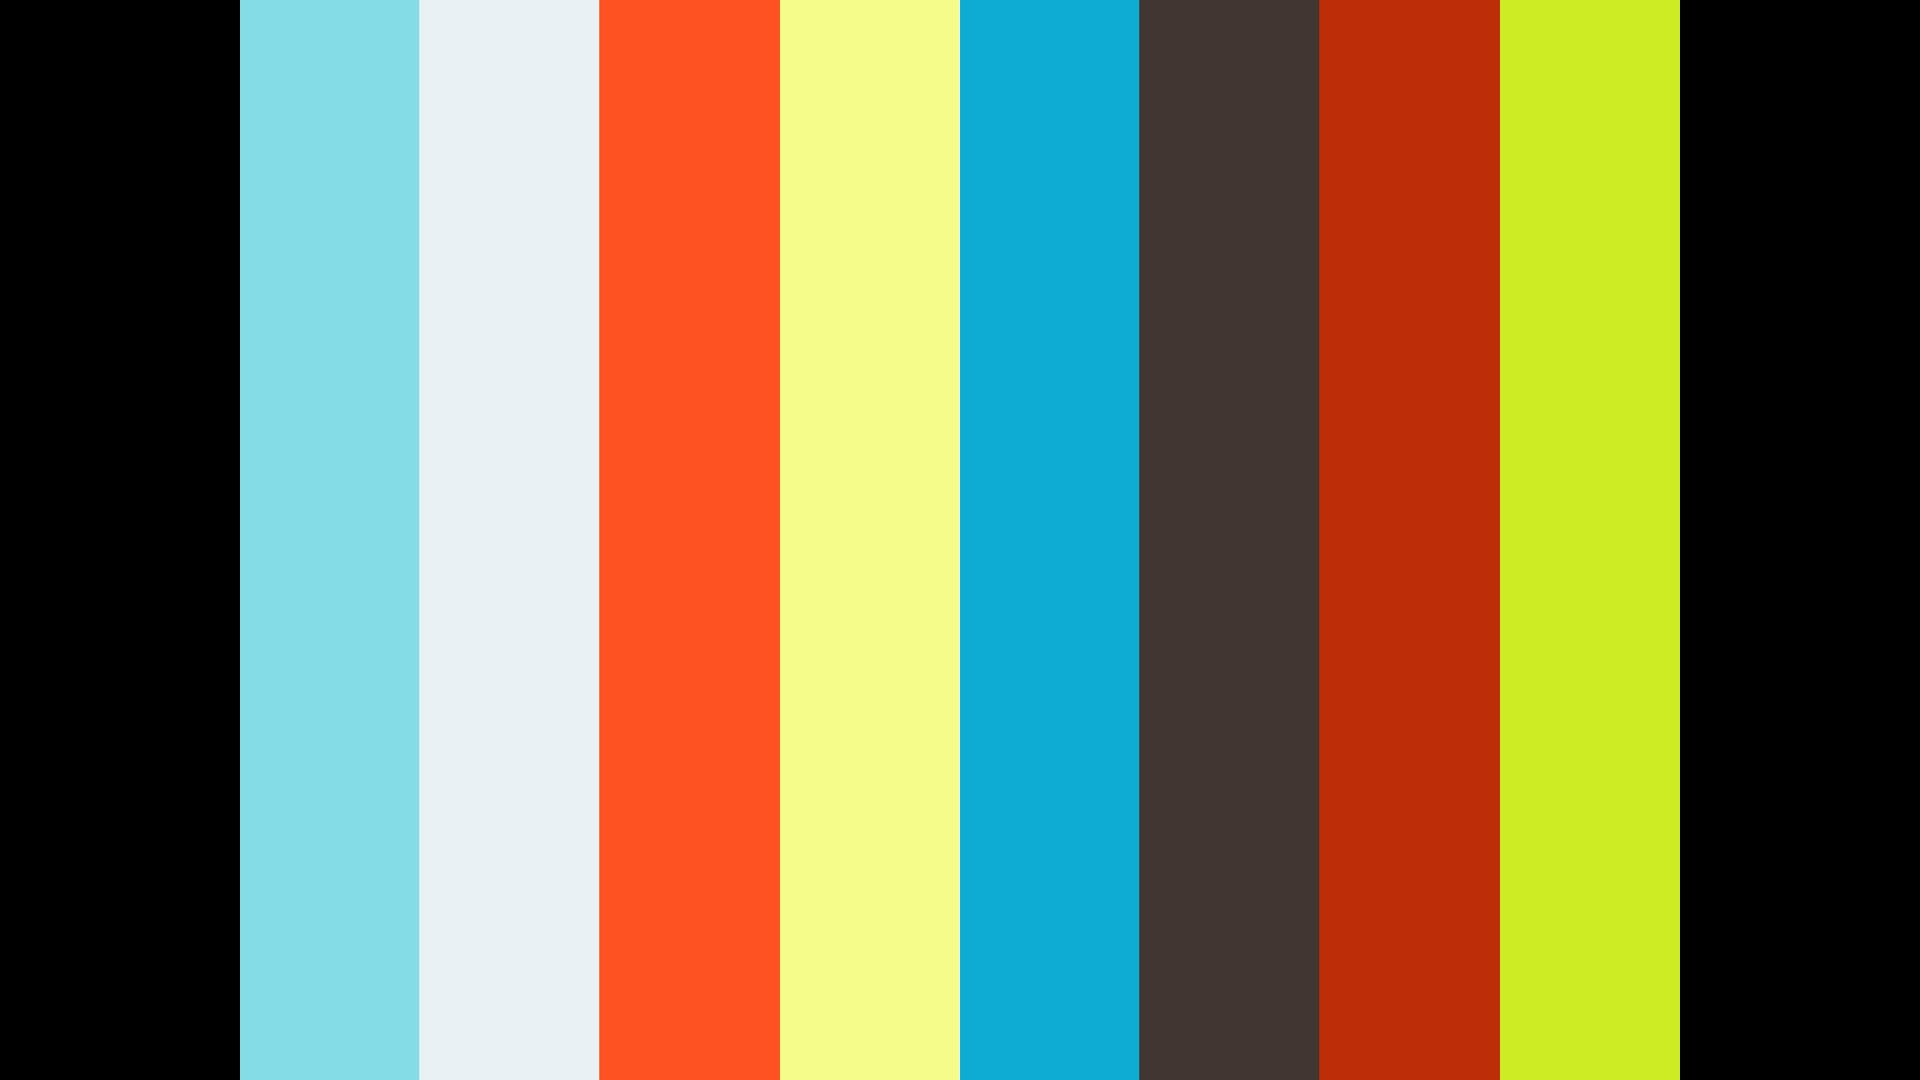 Protecting New Zealanders' rights